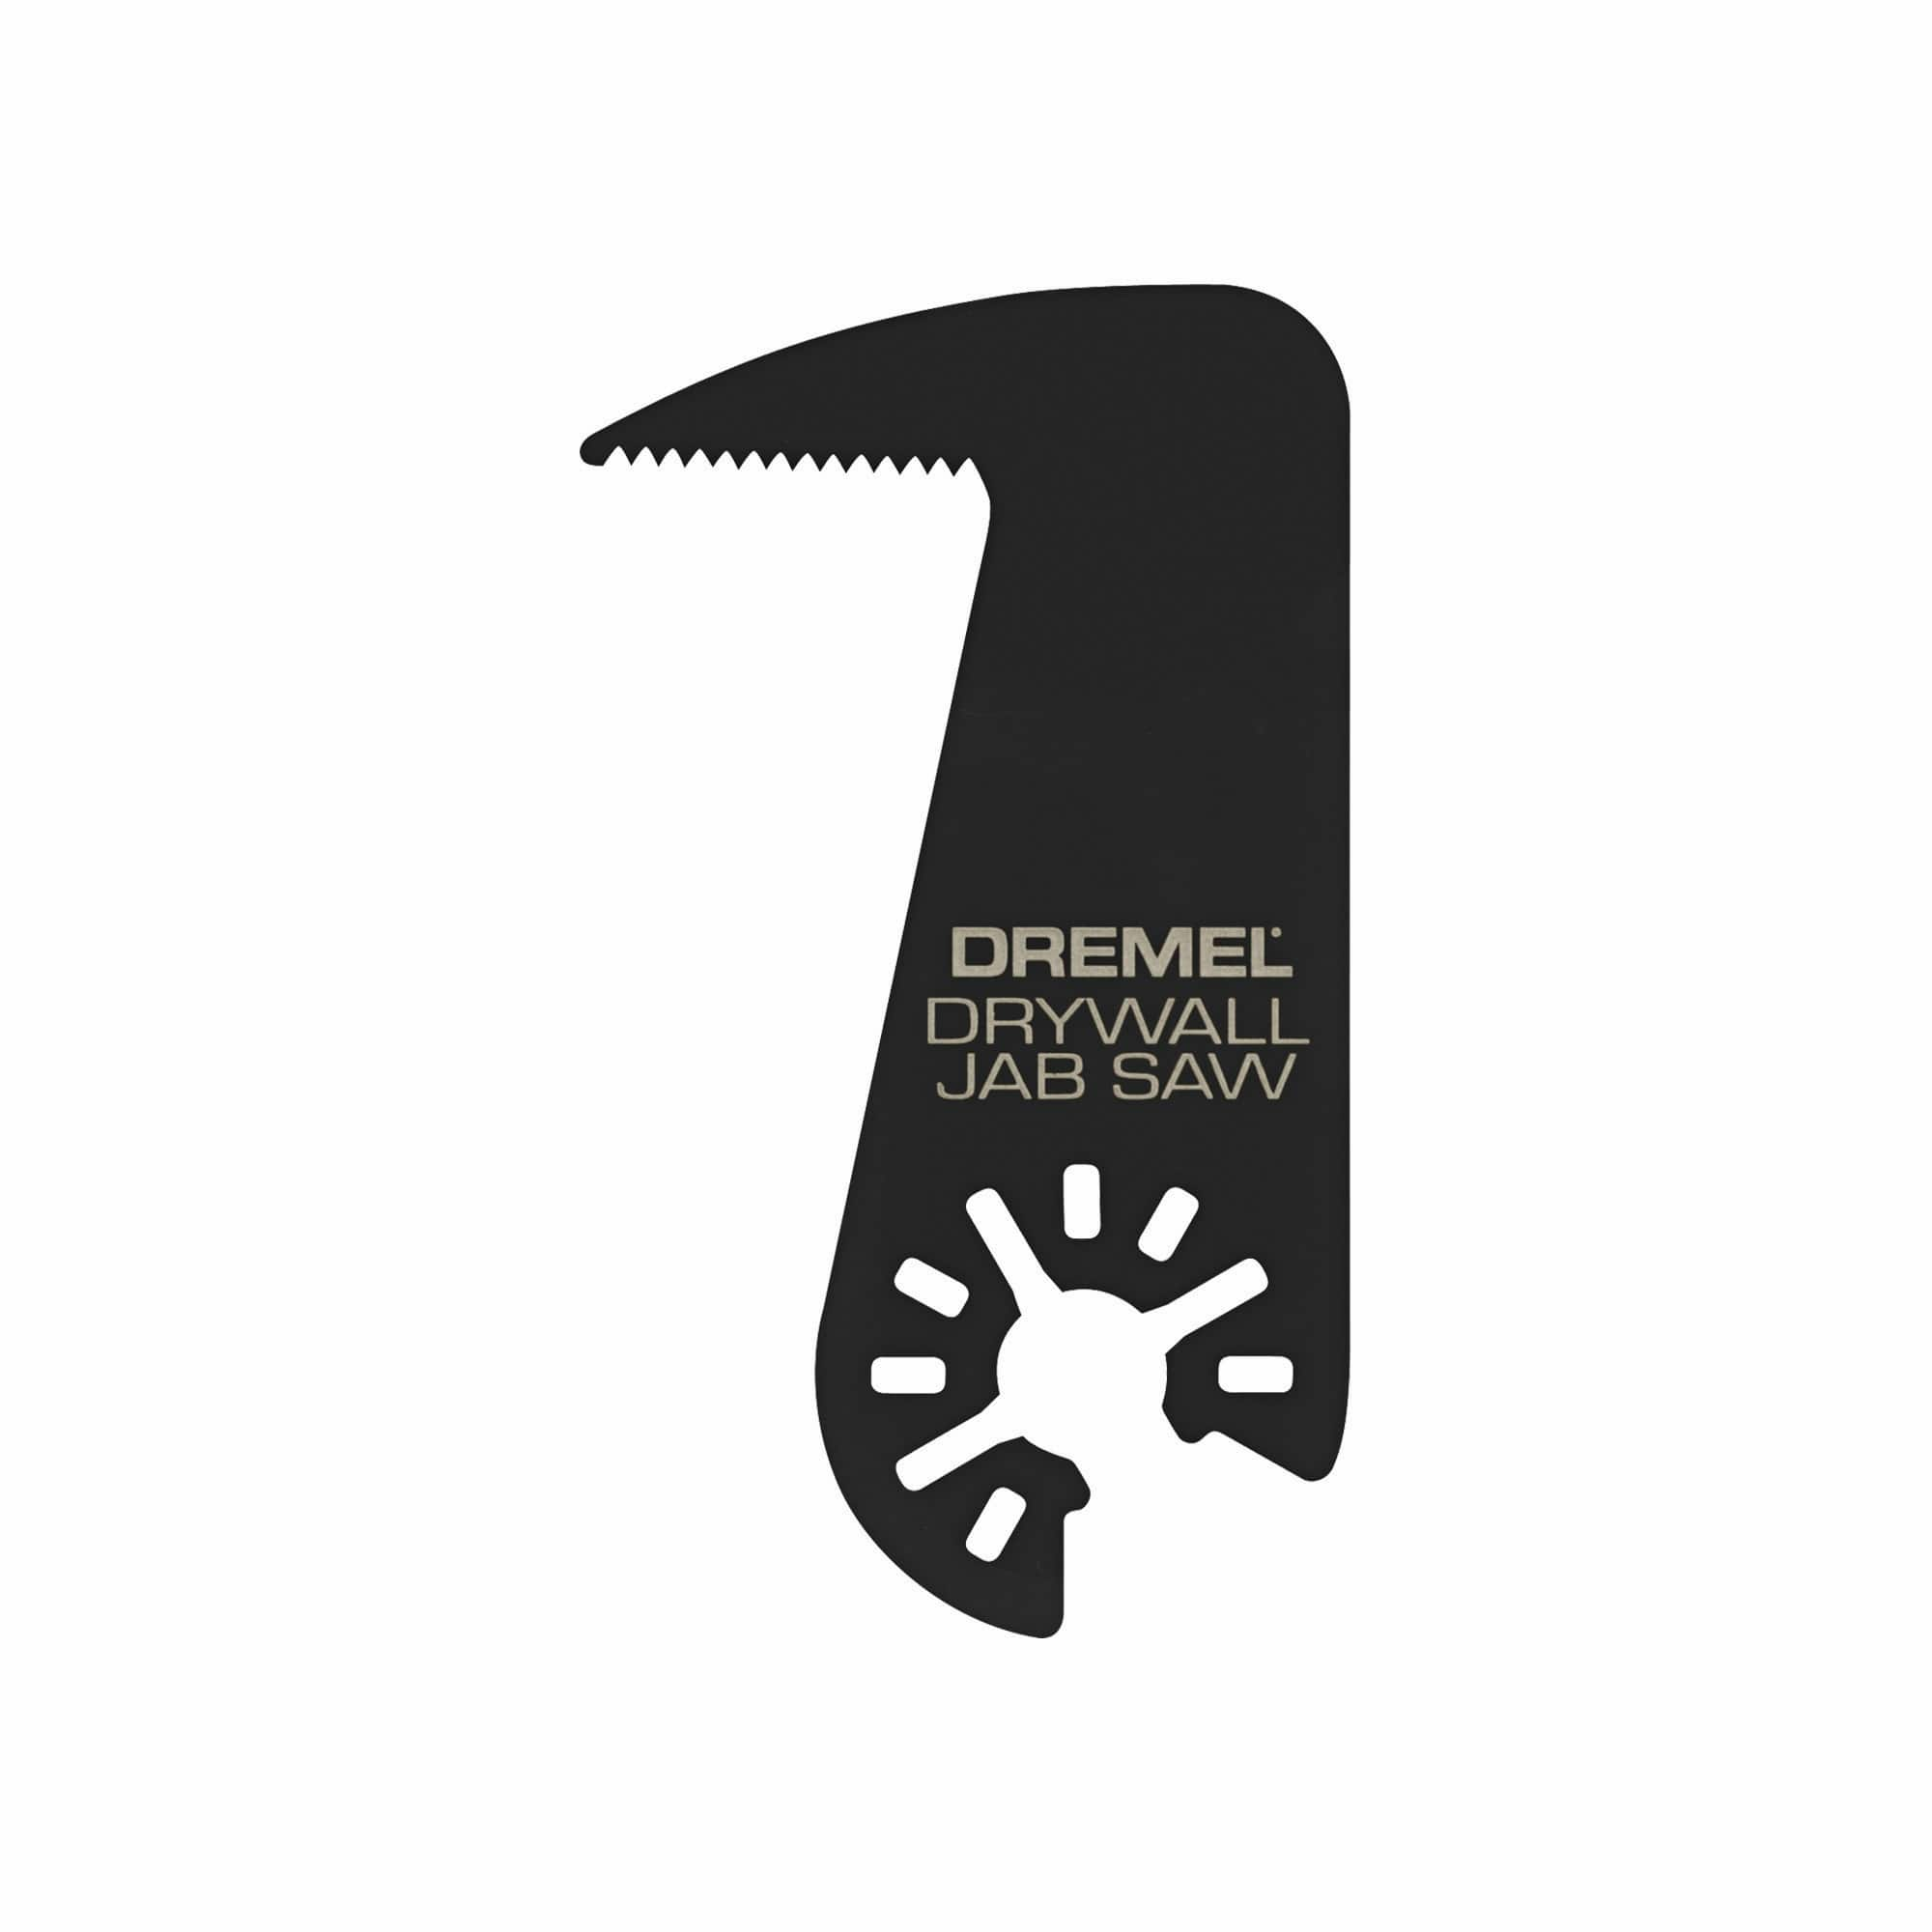 Dremel MM435 Drywall Jab Saw Oscillating Tool blade $3.99 and free Prime Shipping